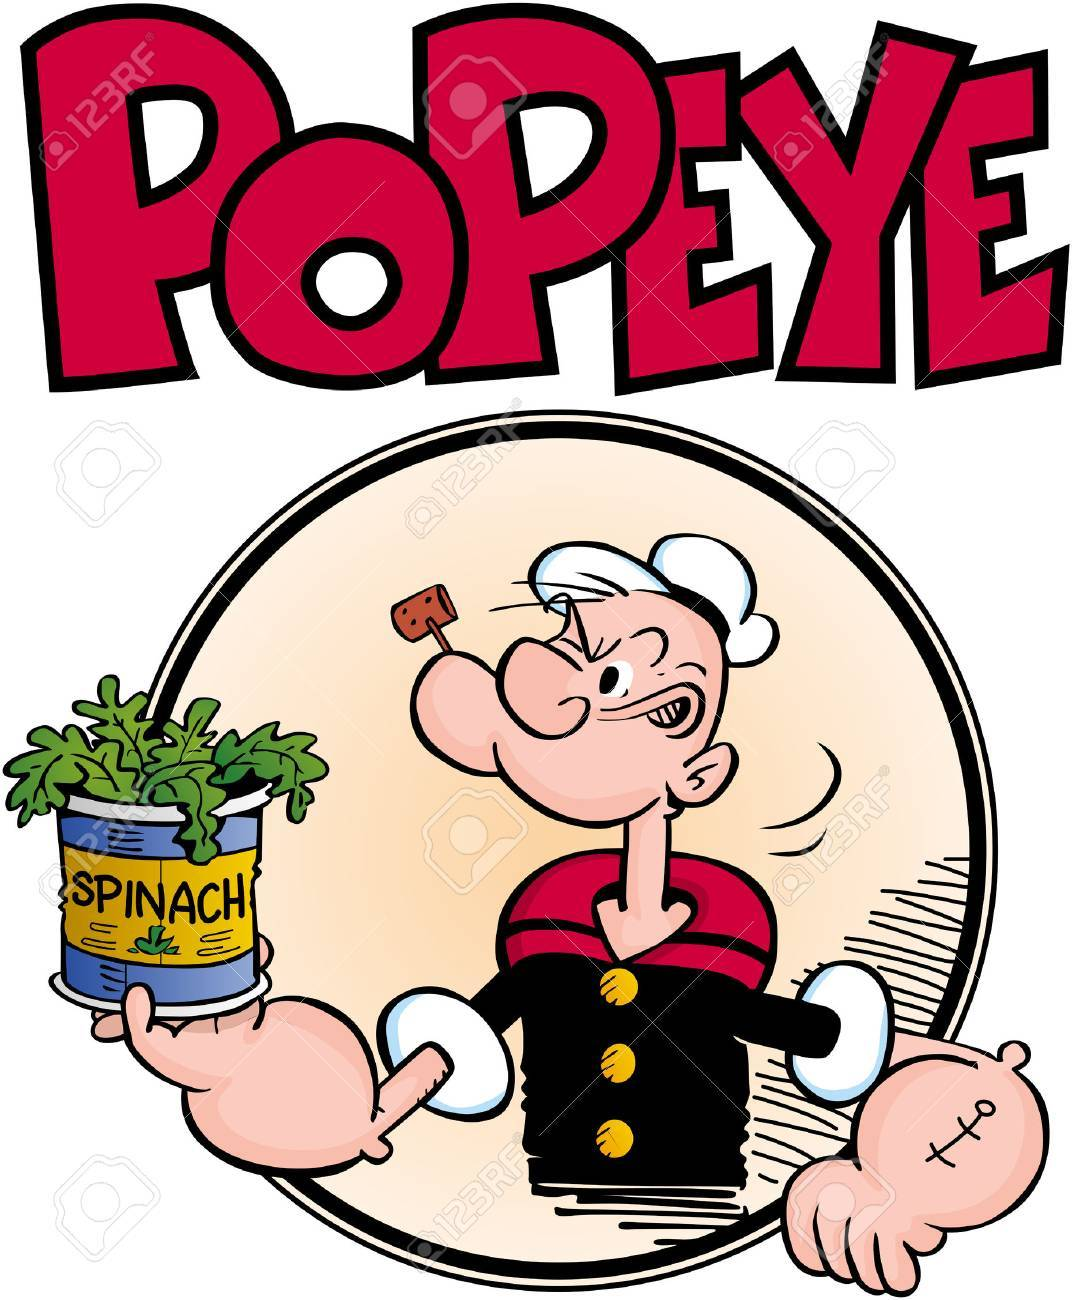 popeye sailor man illustration stock photo picture and royalty free